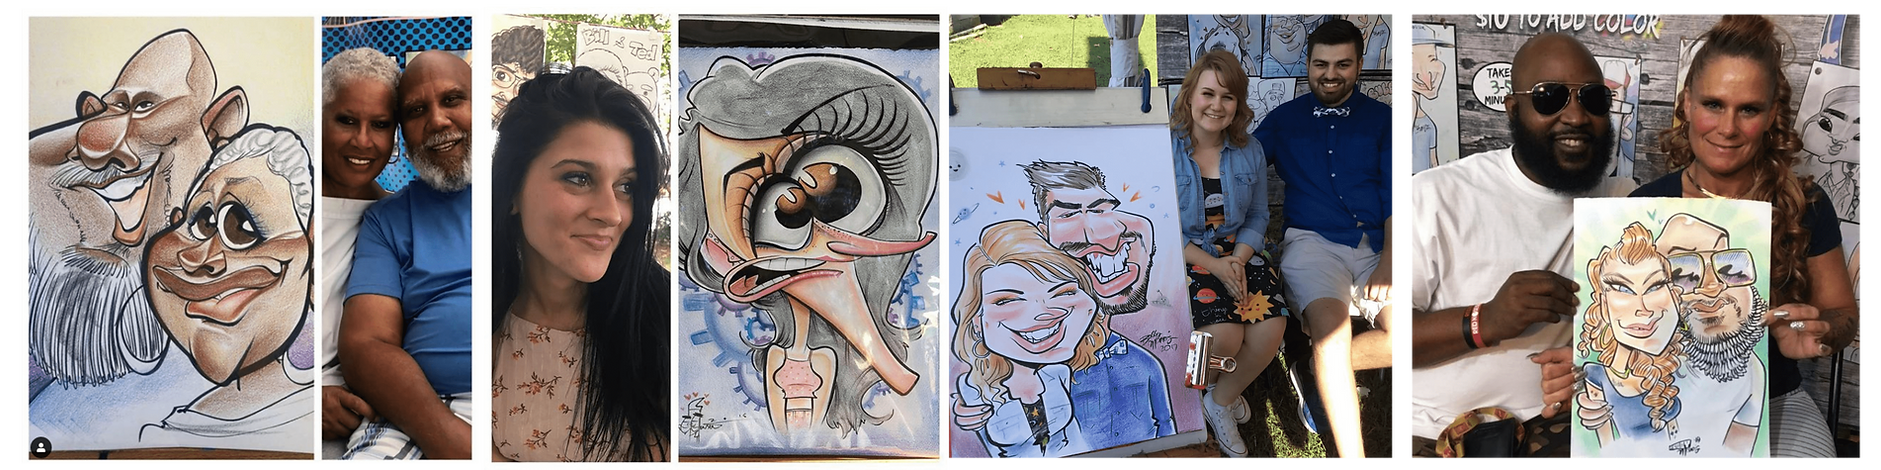 ToonHeadz Caricature Samples